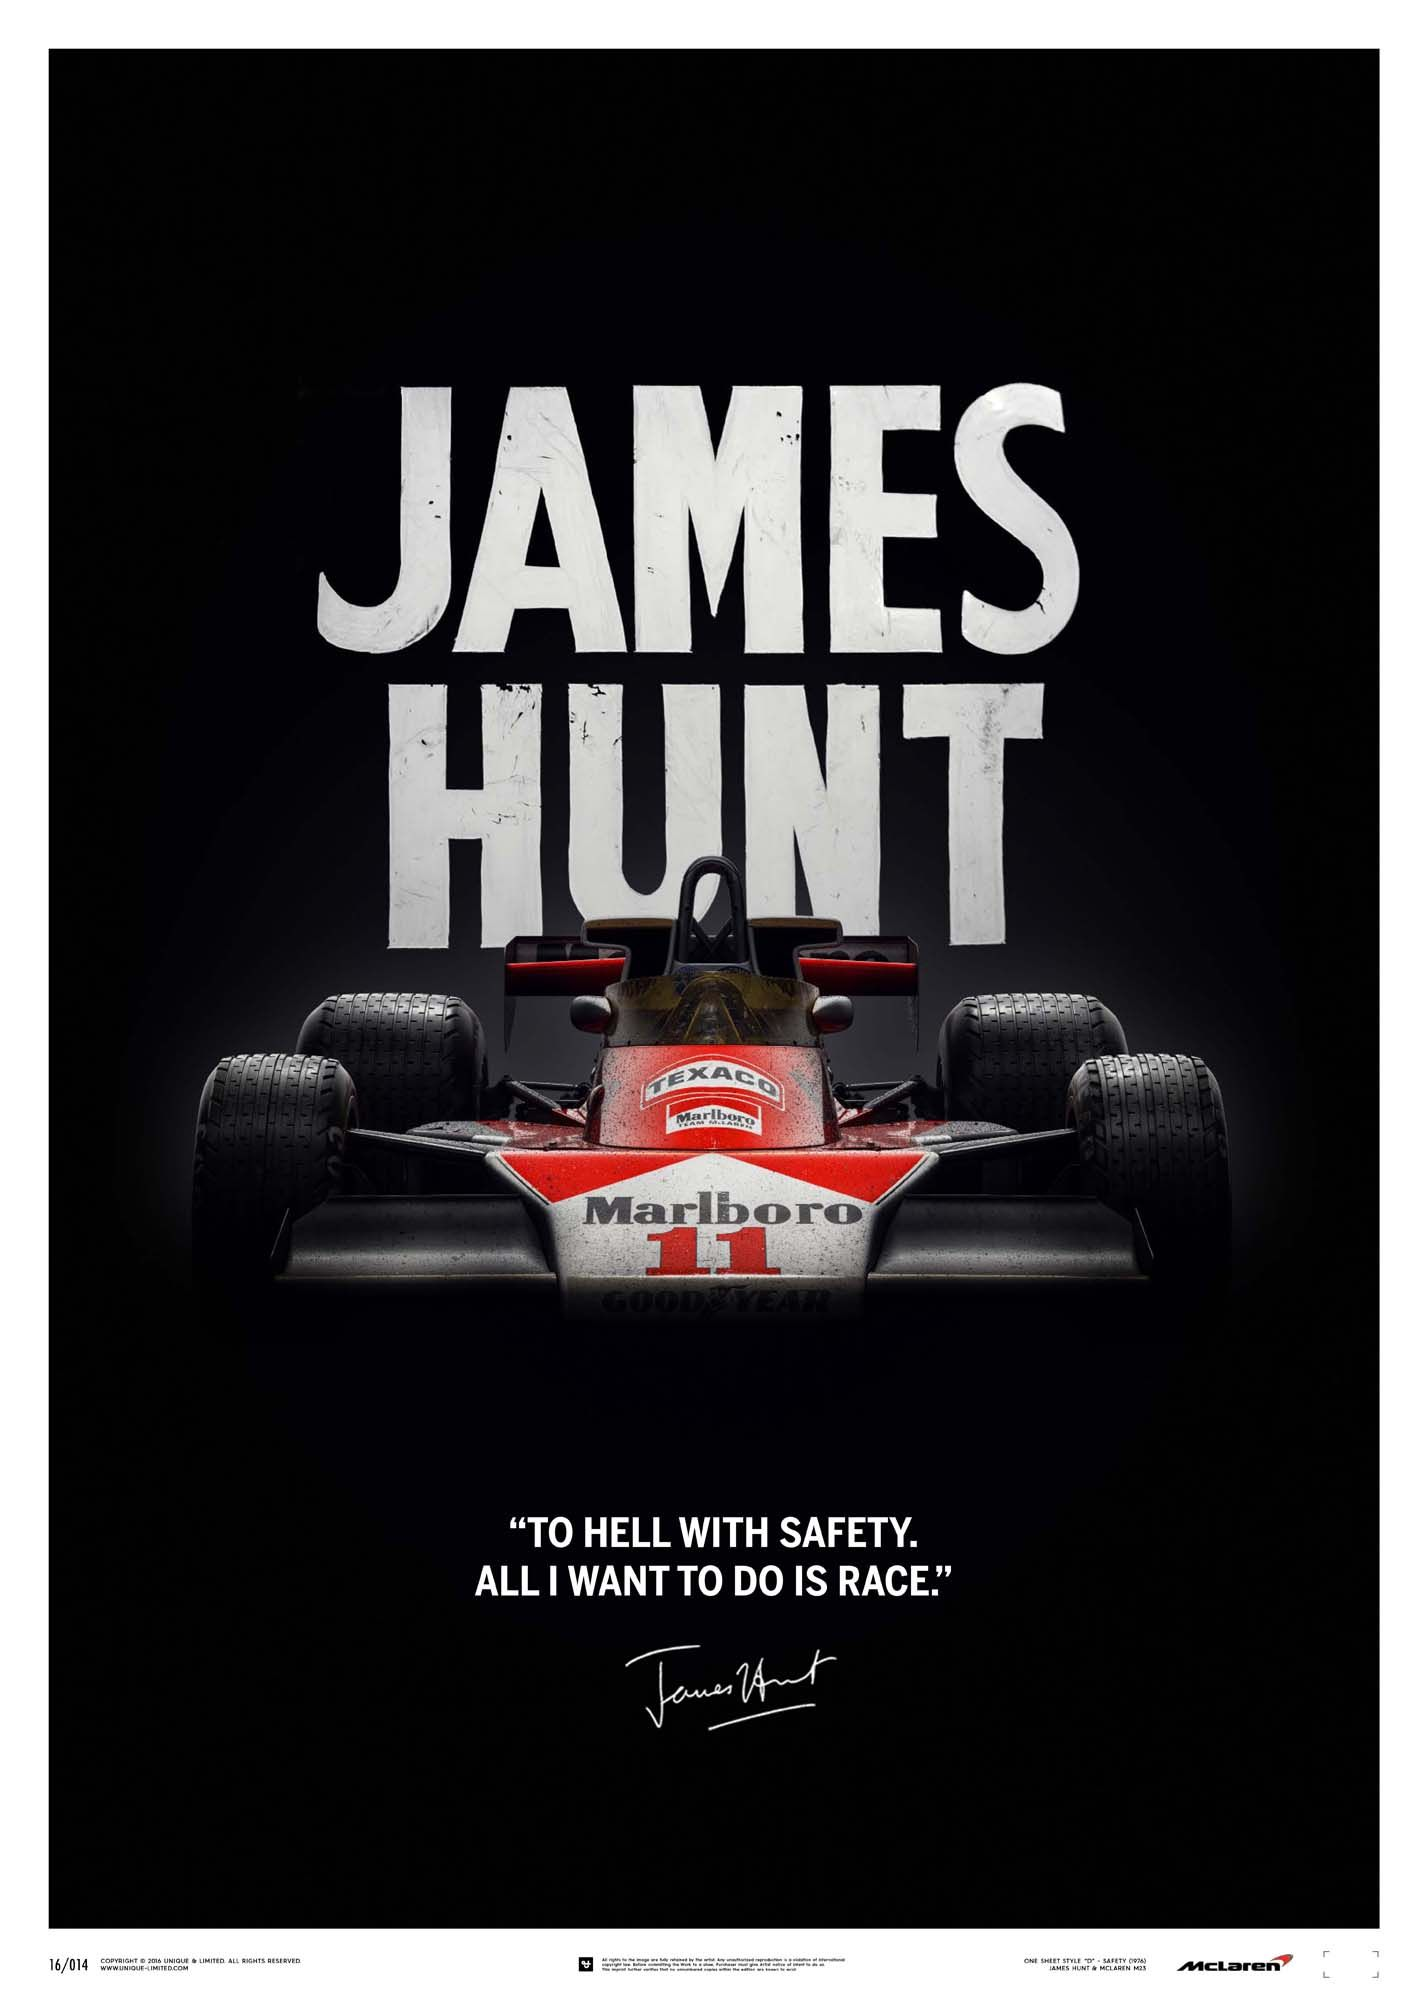 McLaren James Hunt 40th Anniversary Quote Limited Edition Poster 1428x2000